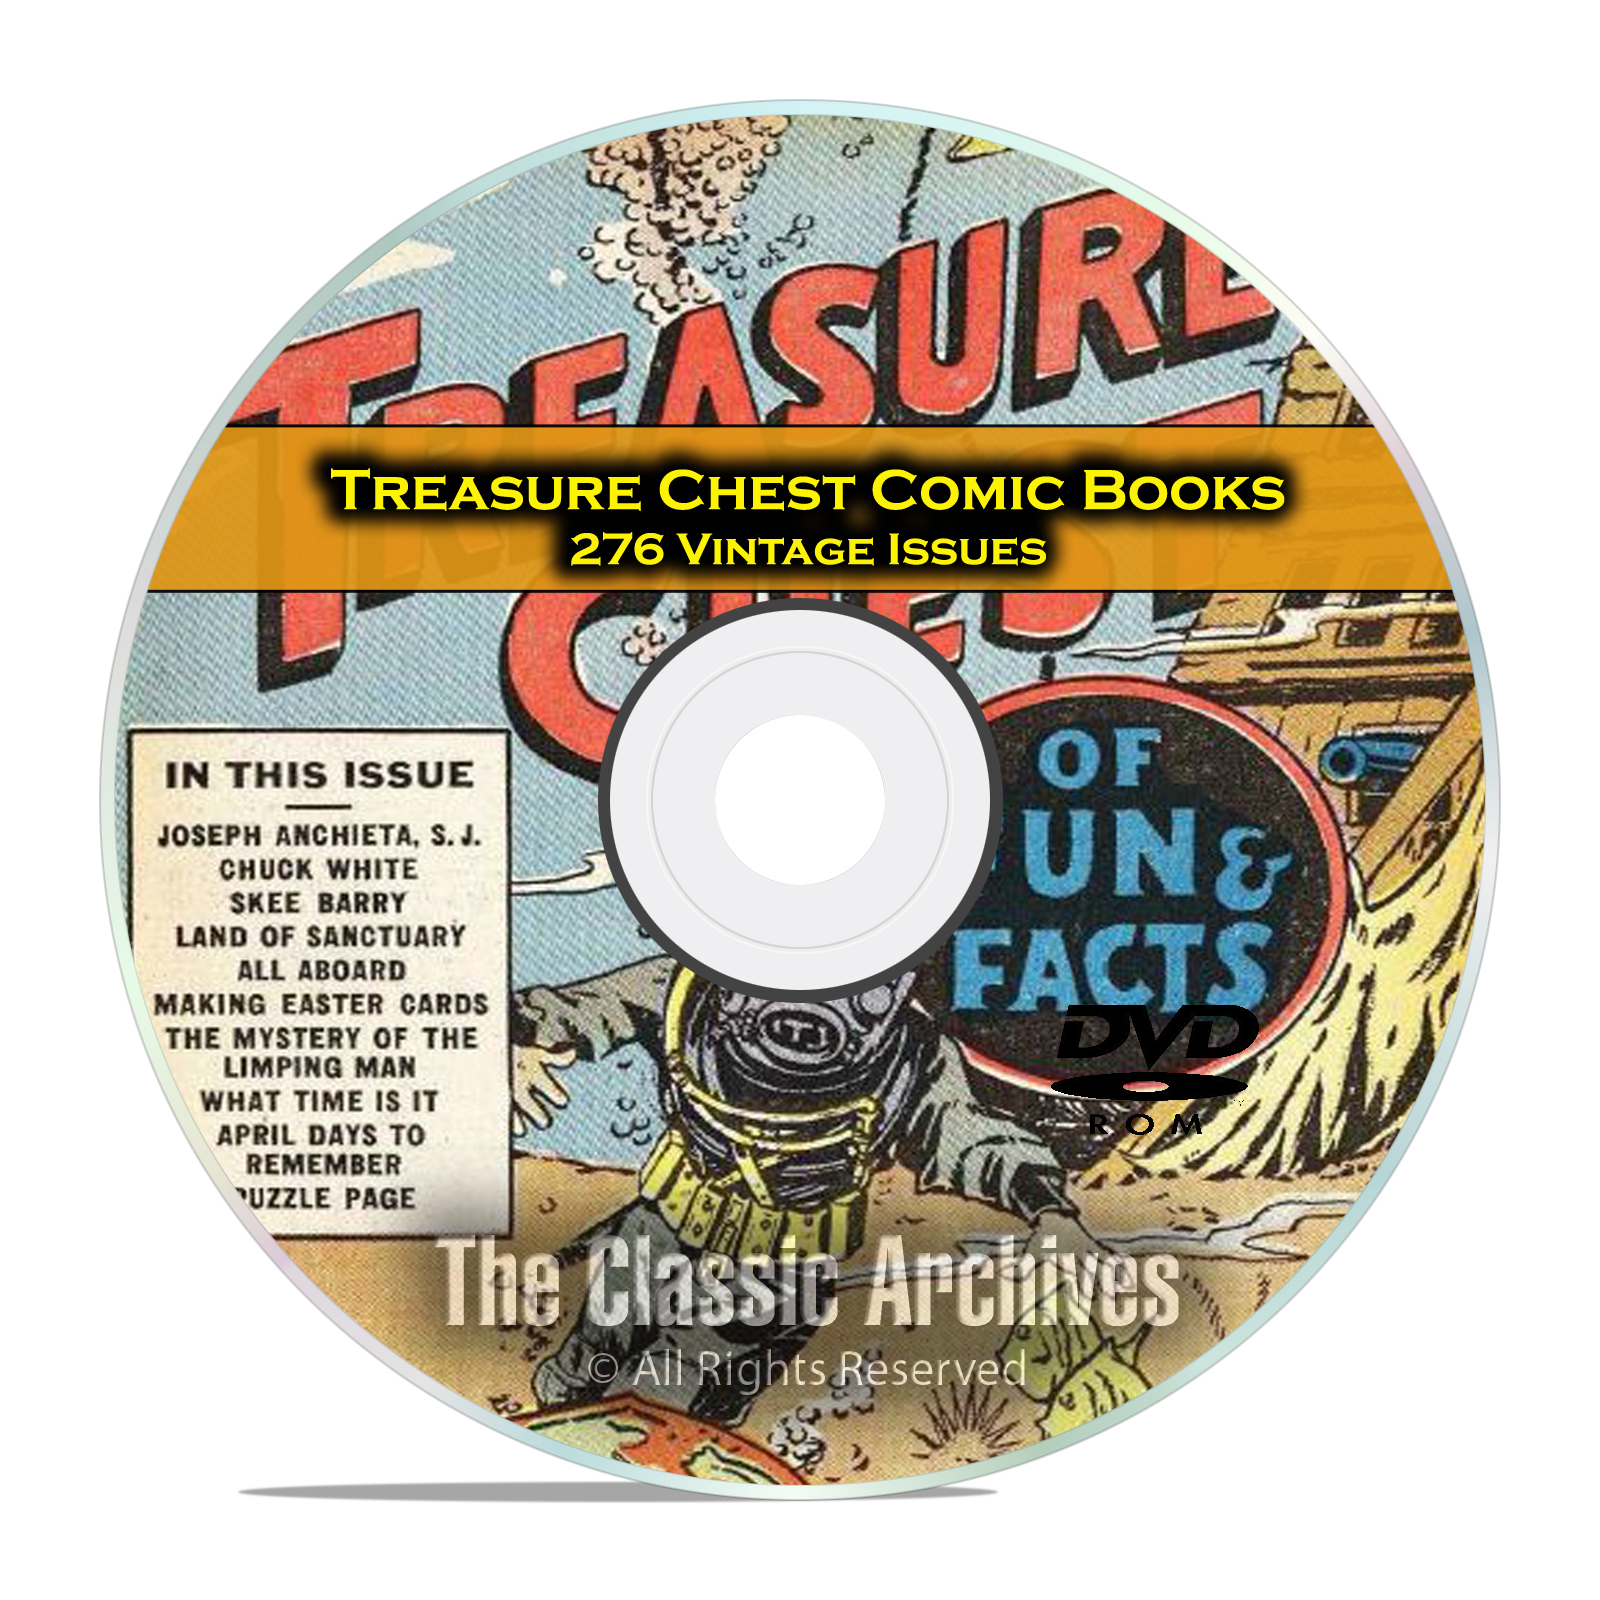 Treasure Chest Comic Books, Catechetical Guild, 276 Golden Age Comics DVD